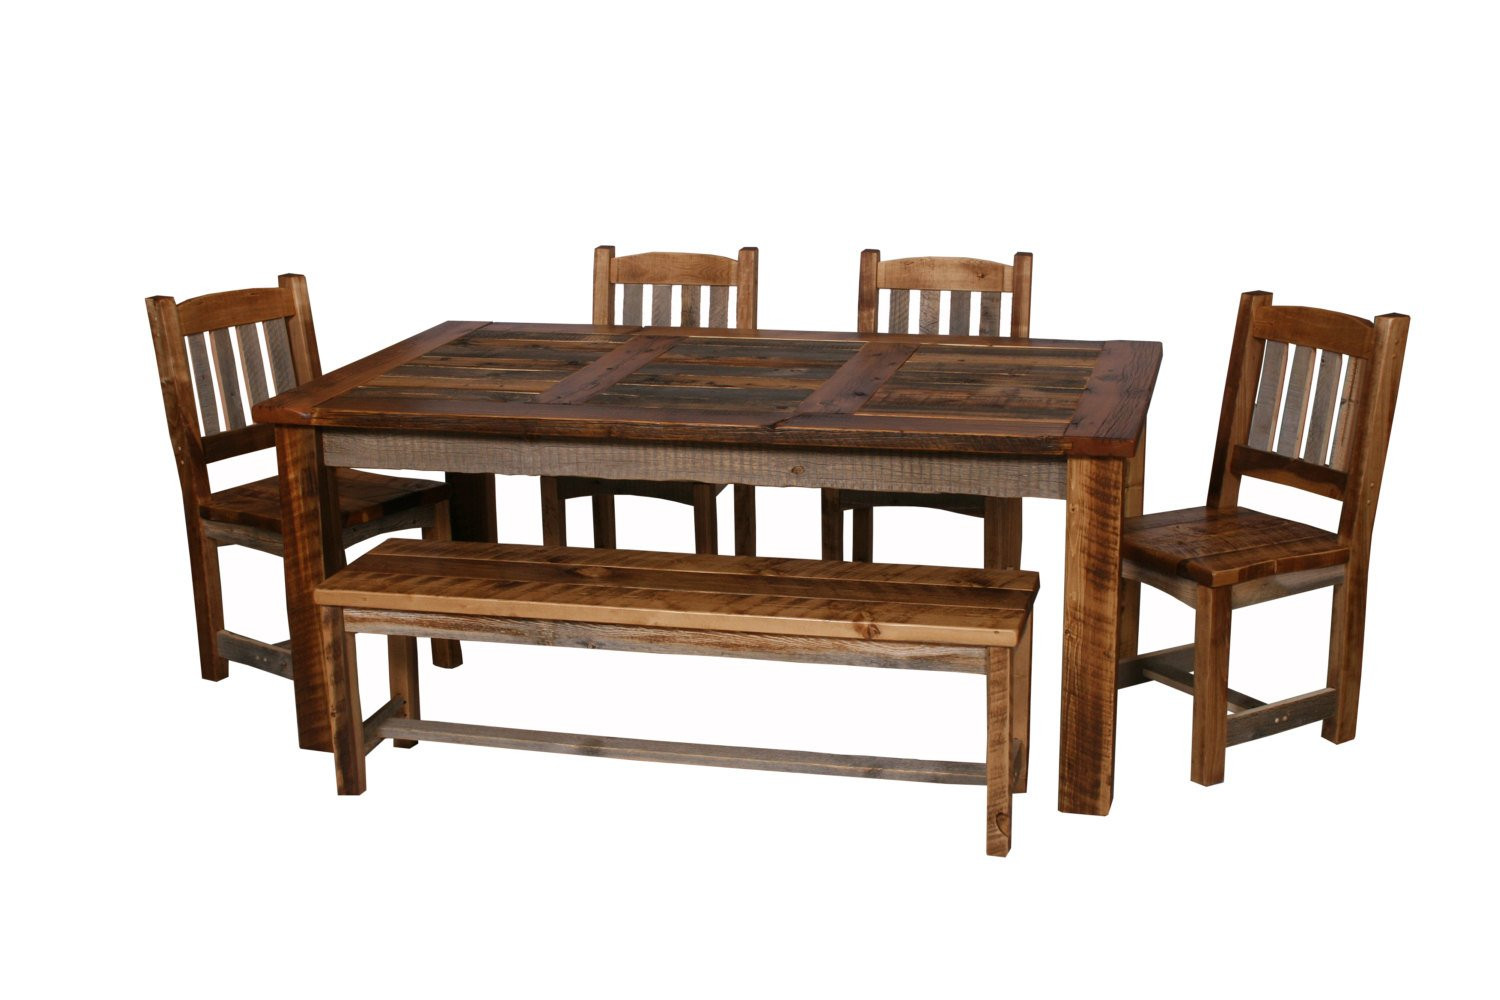 Best ideas about Wood Dining Table Set . Save or Pin Natural Barn Wood Dining Table Set Dining Room Furniture Now.